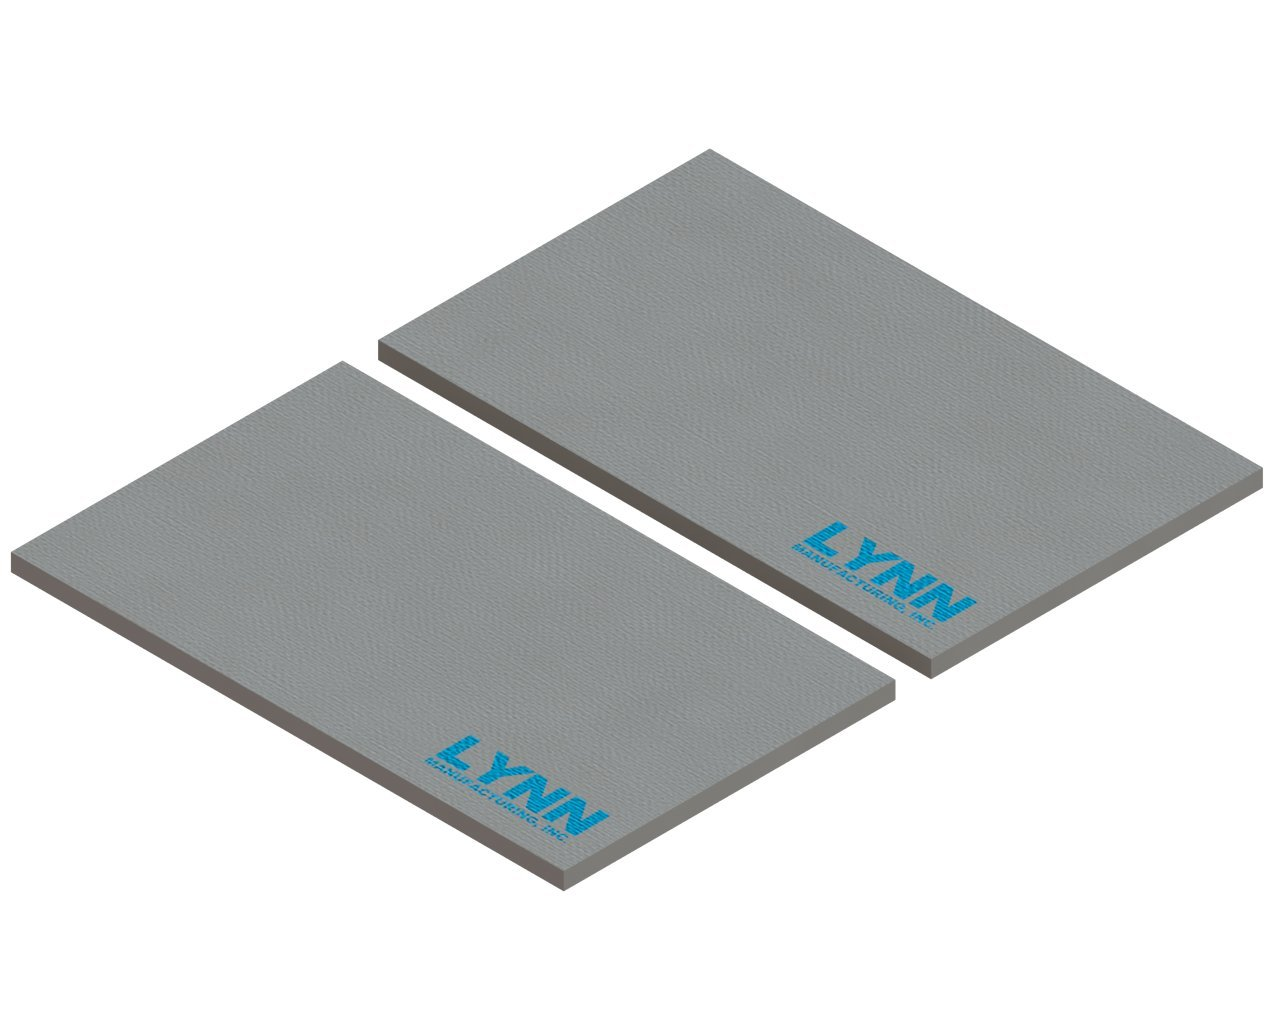 Replacement Quadrafire Baffle Board, 4300 Acc, SRV7037-112, Set of 2 by Lynn Manufacturing